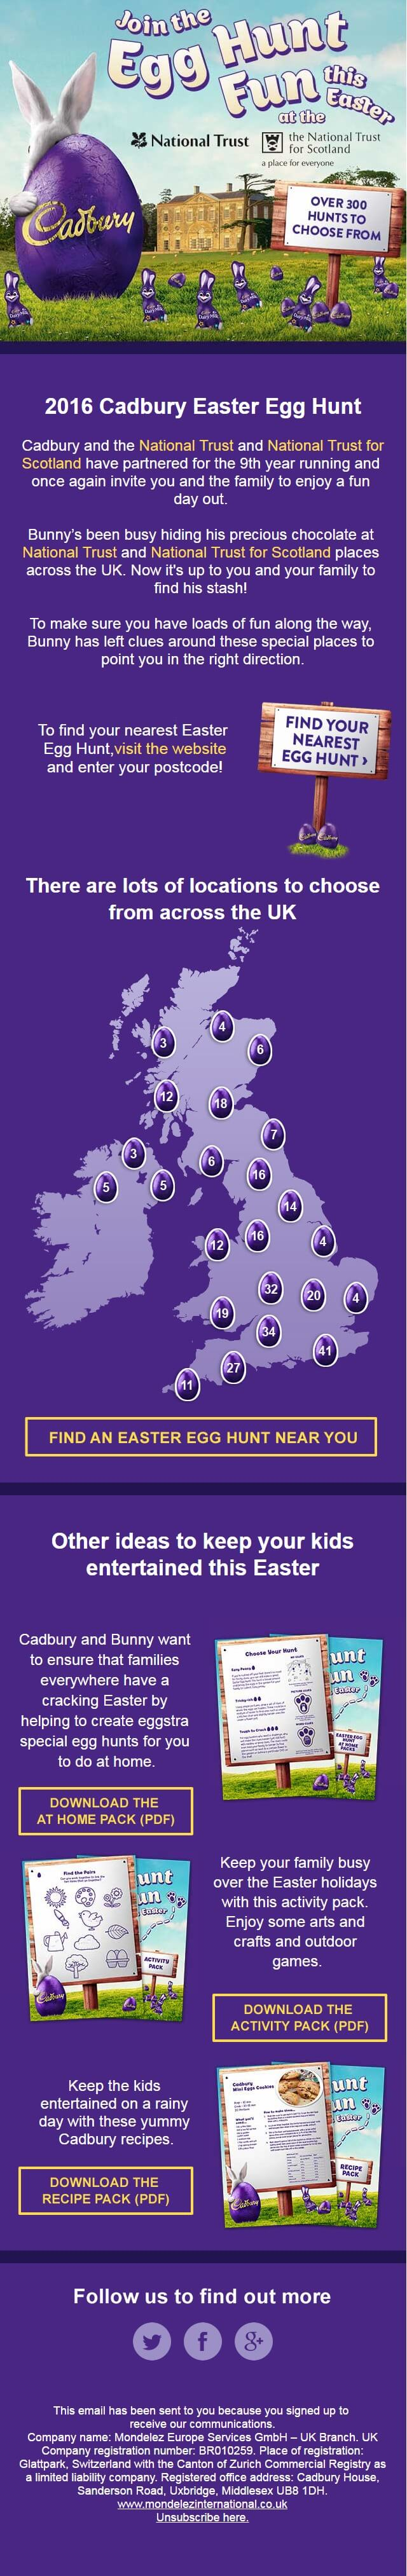 Join the Cadbury Egg hunt fun this Easter